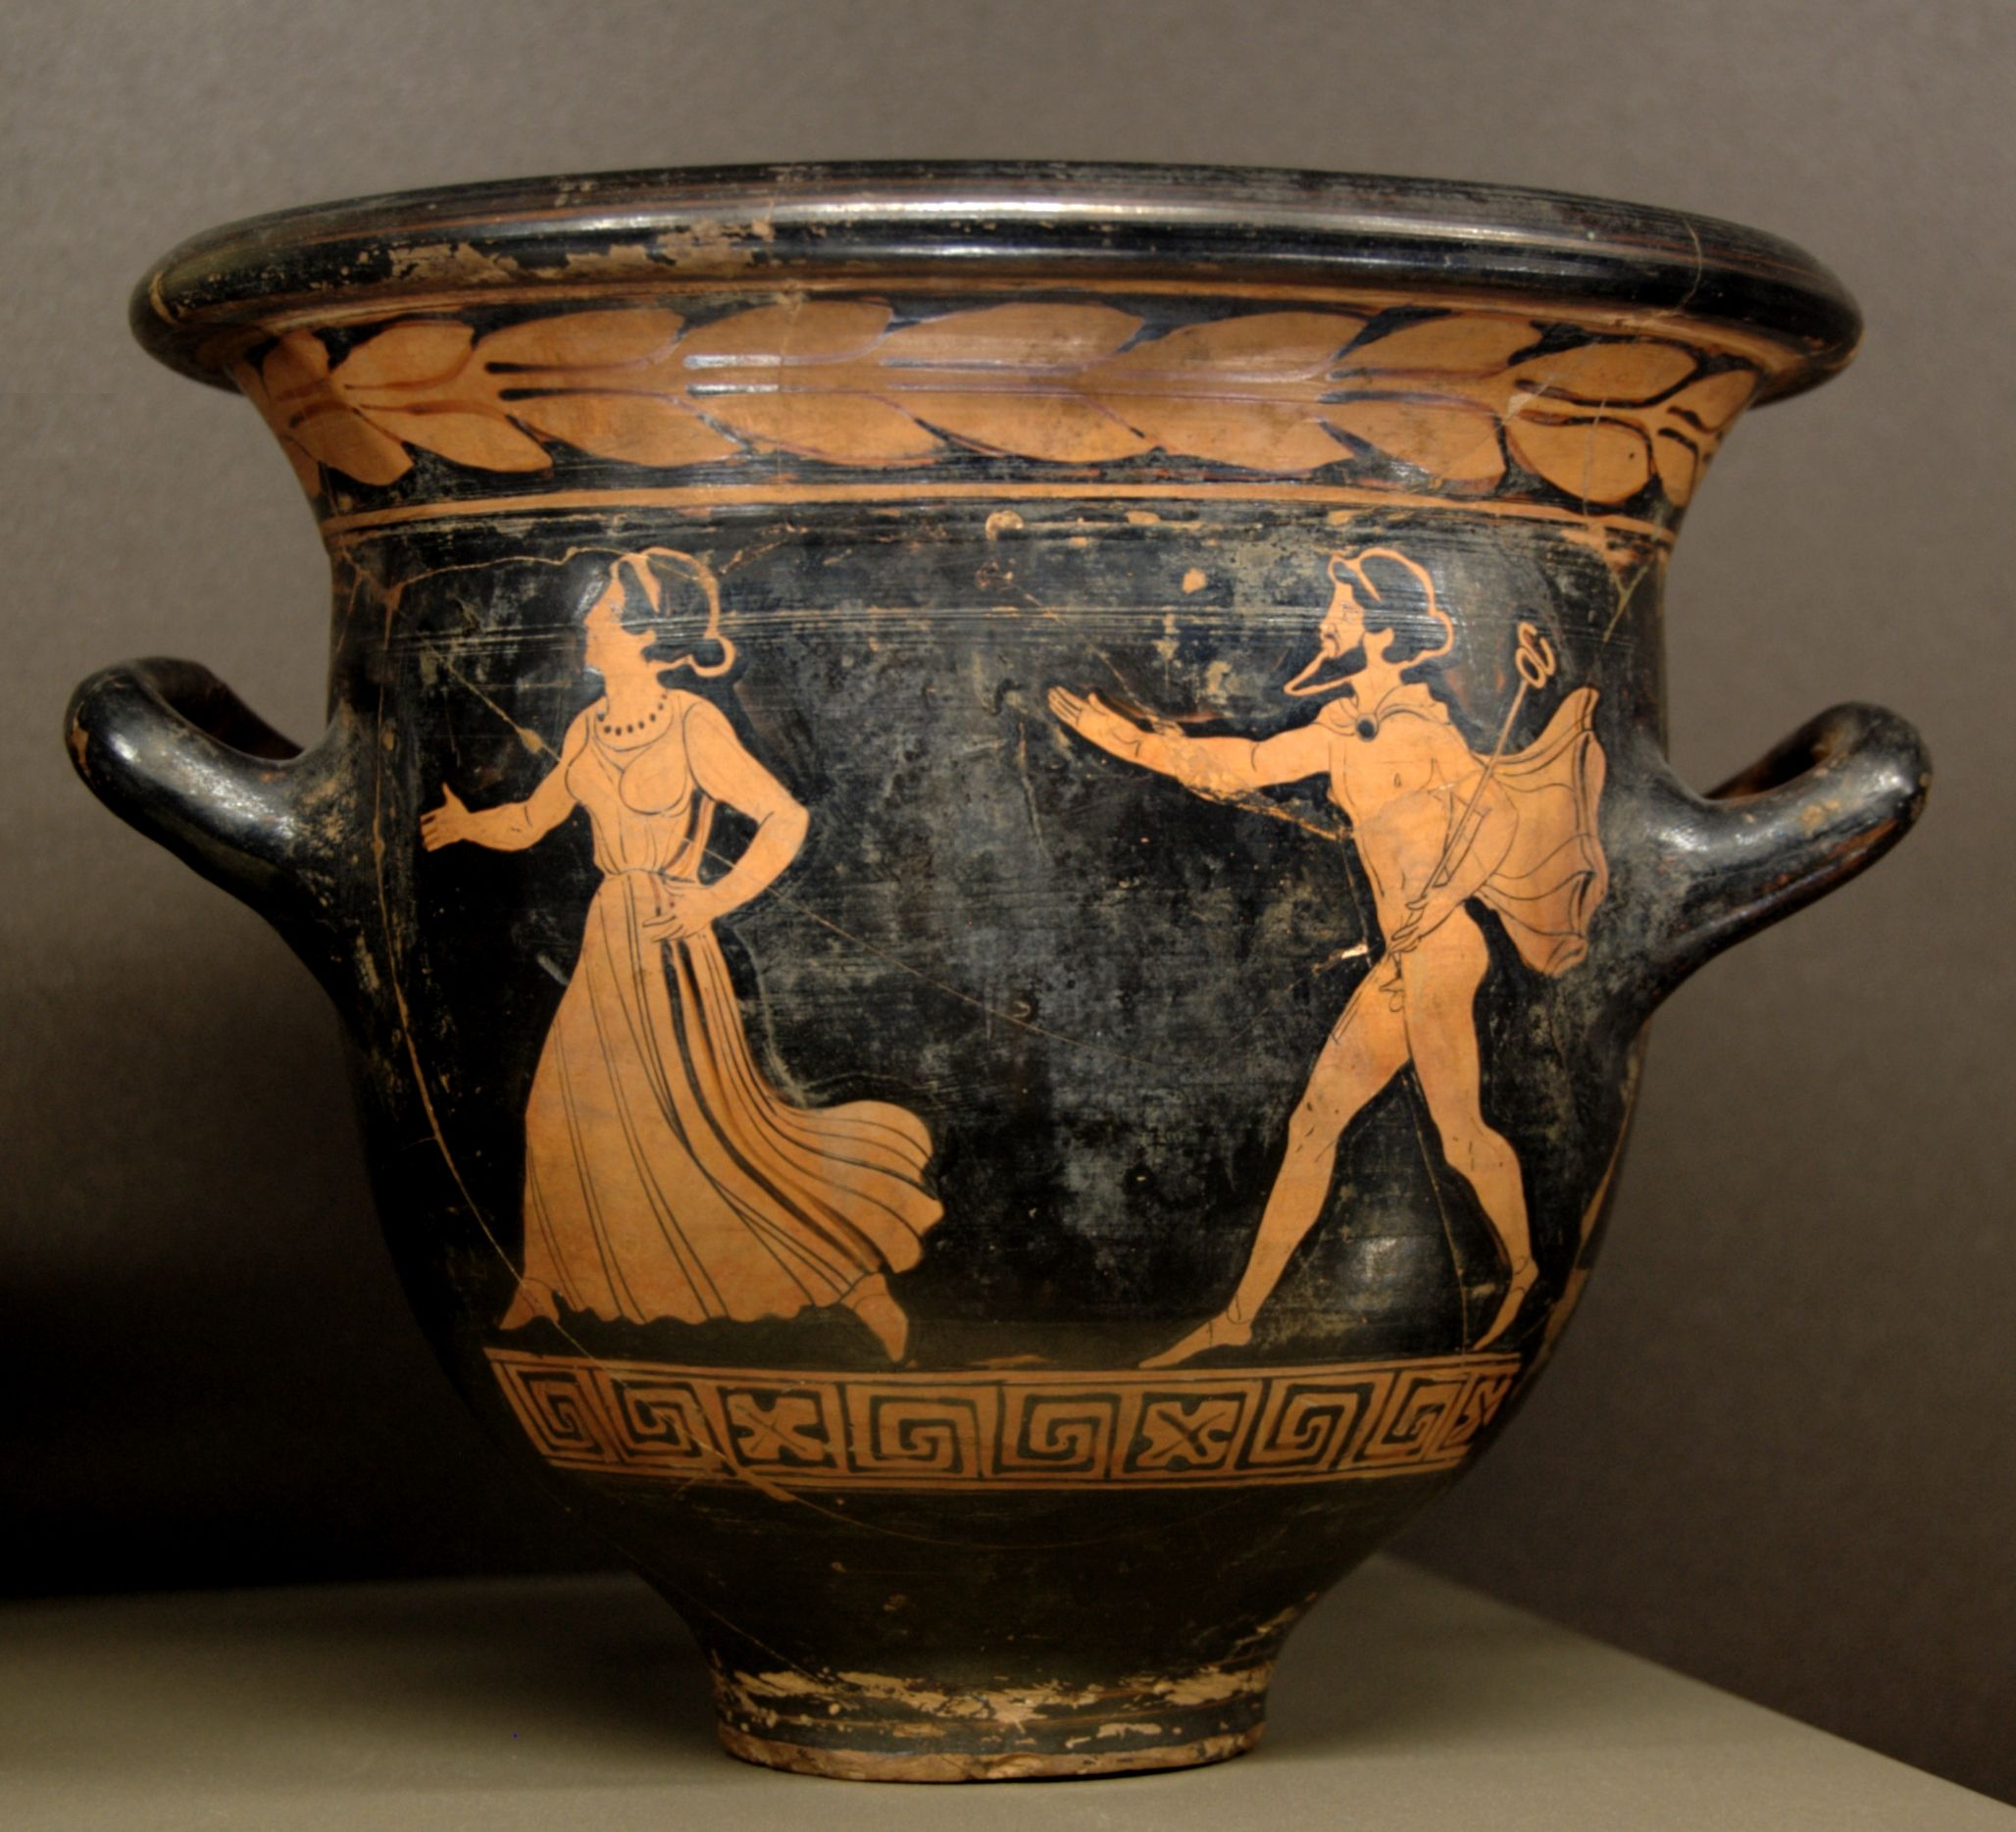 Hermes pursuing a woman bell krater by the dolon painter circa hermes pursuing a woman bell krater by the dolon painter circa 39080 ancient greek reviewsmspy